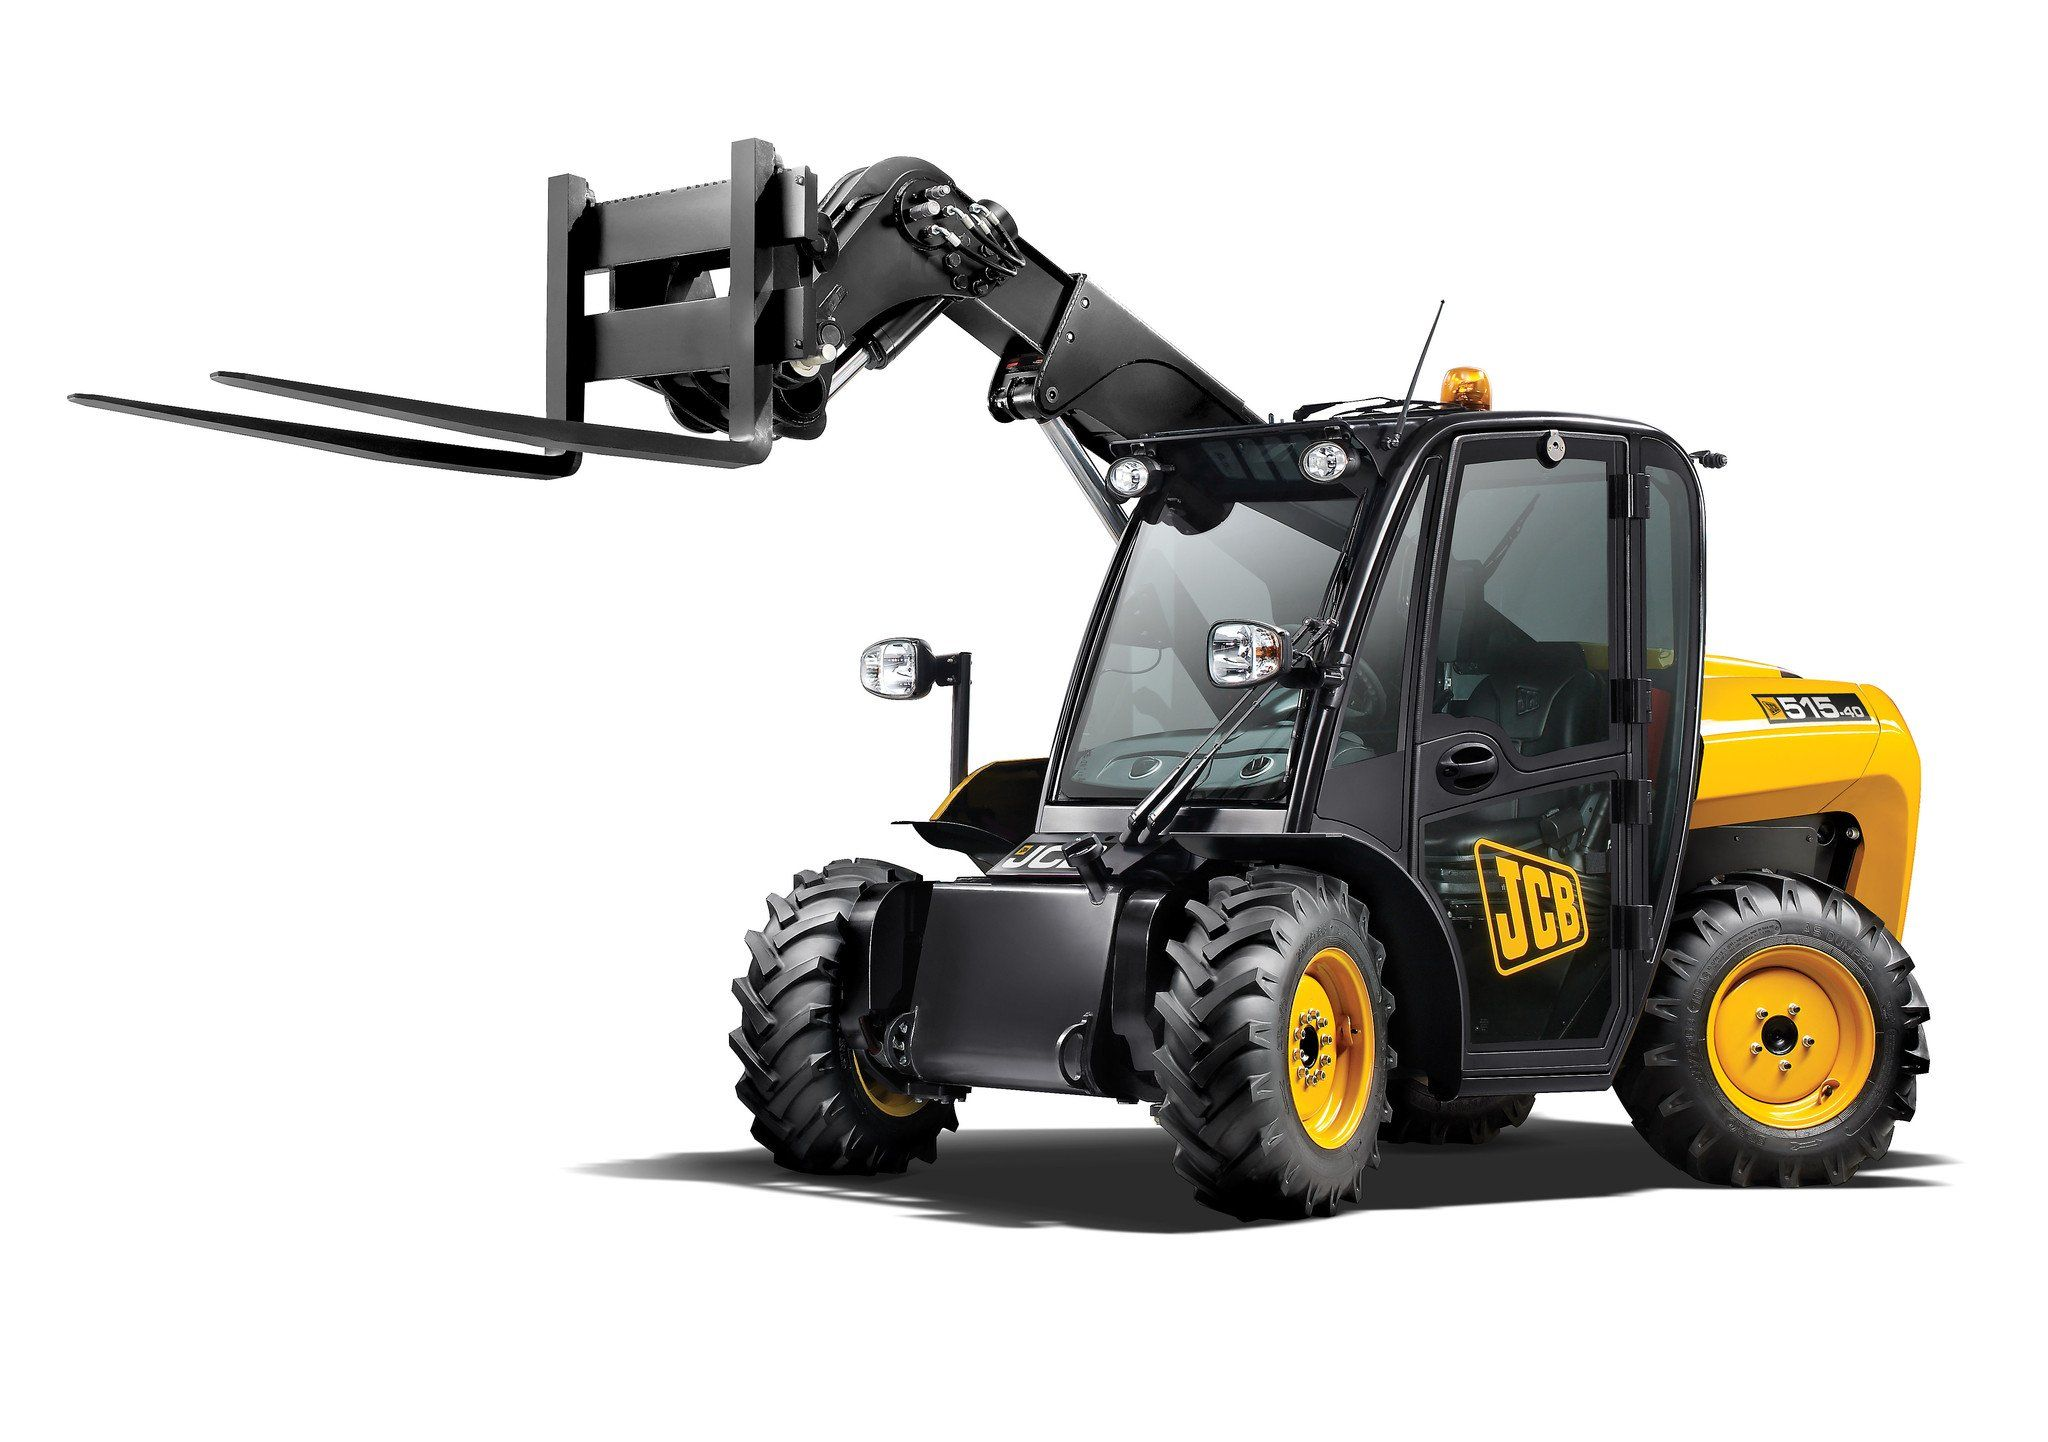 This is the most complete Service Repair Manual for the JCB 515-40  Telescopic Handler.Service Repair Manual can come in handy especially when  you have to d